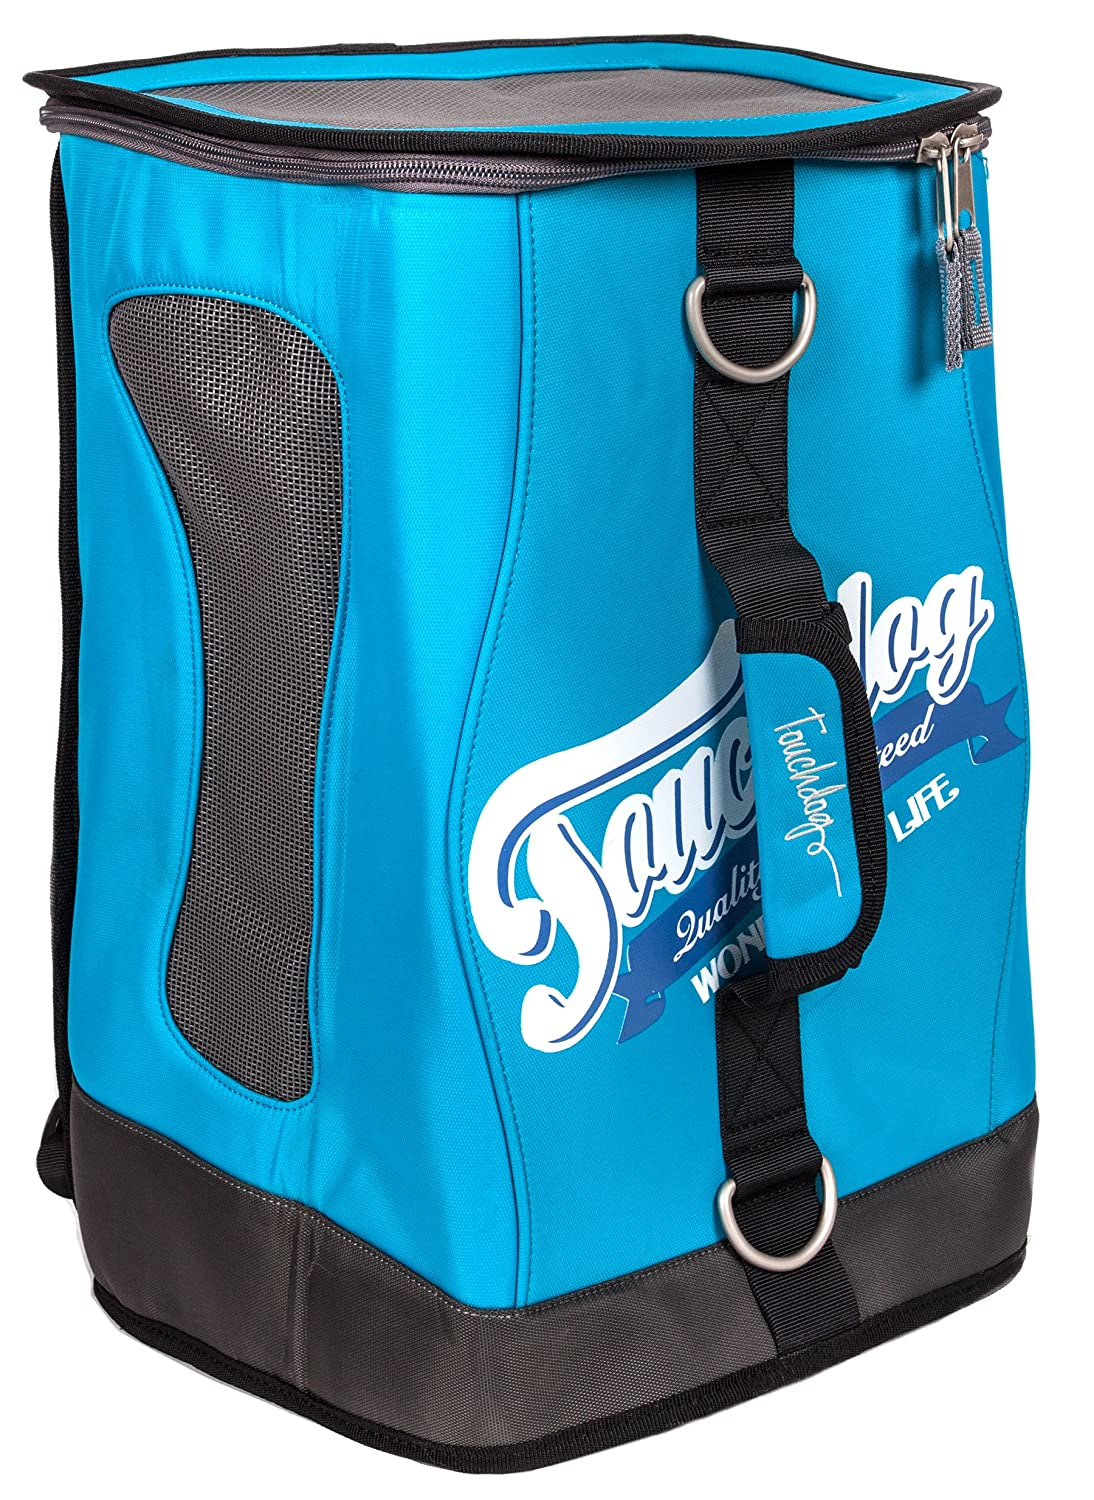 Turquoise bluee One Size Turquoise bluee One Size TOUCHDOG 'Ultimate-Travel' 3-in-1 Airline Approved Water Resistant Backpack, Handheld and Shoulder Sporty Fashion Pet Dog Carrier, One Size, Turquoise bluee